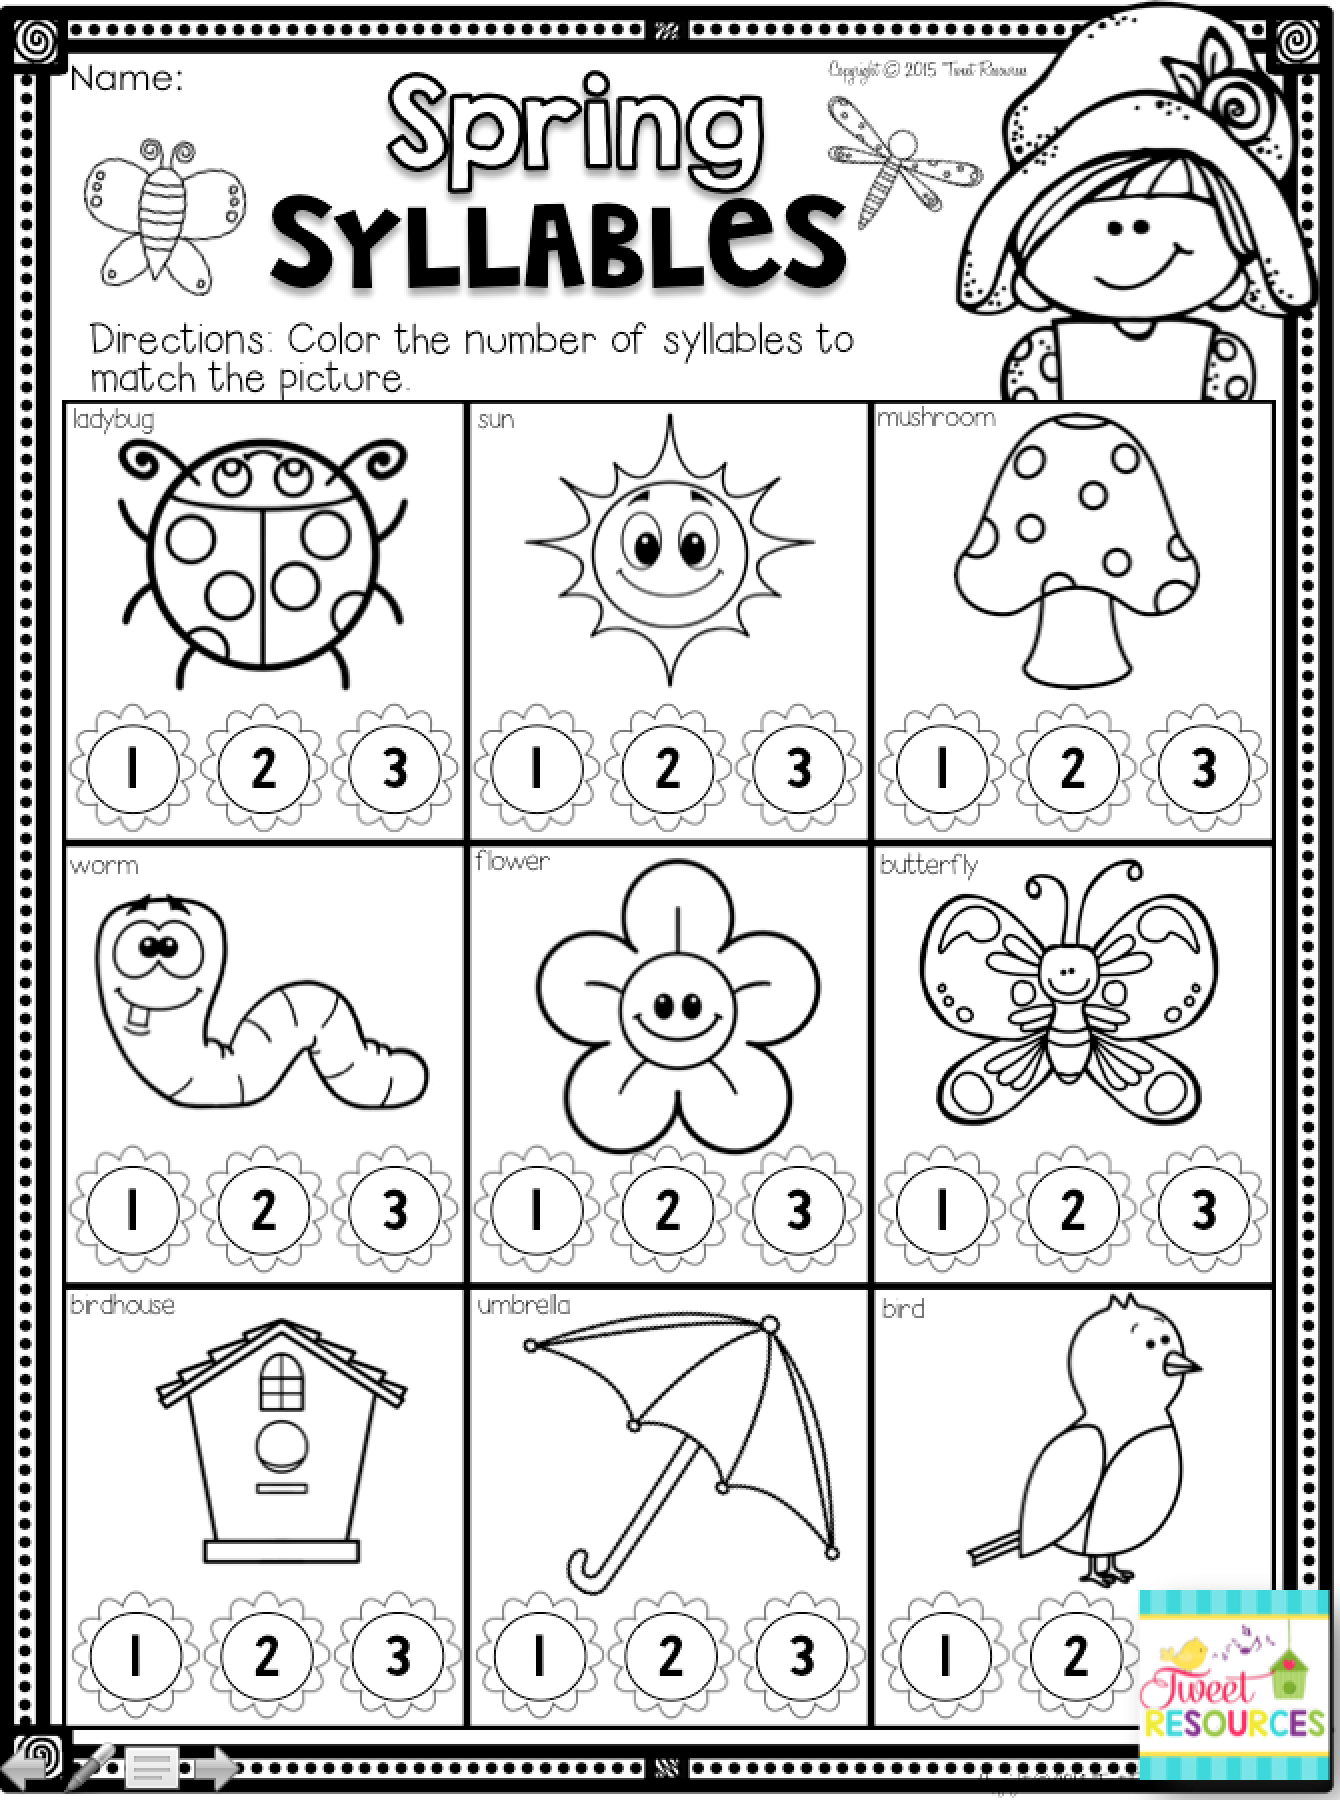 Kindergarten Math And Literacy Printables For Spring! Spring | Spring Printable Worksheets For Preschoolers